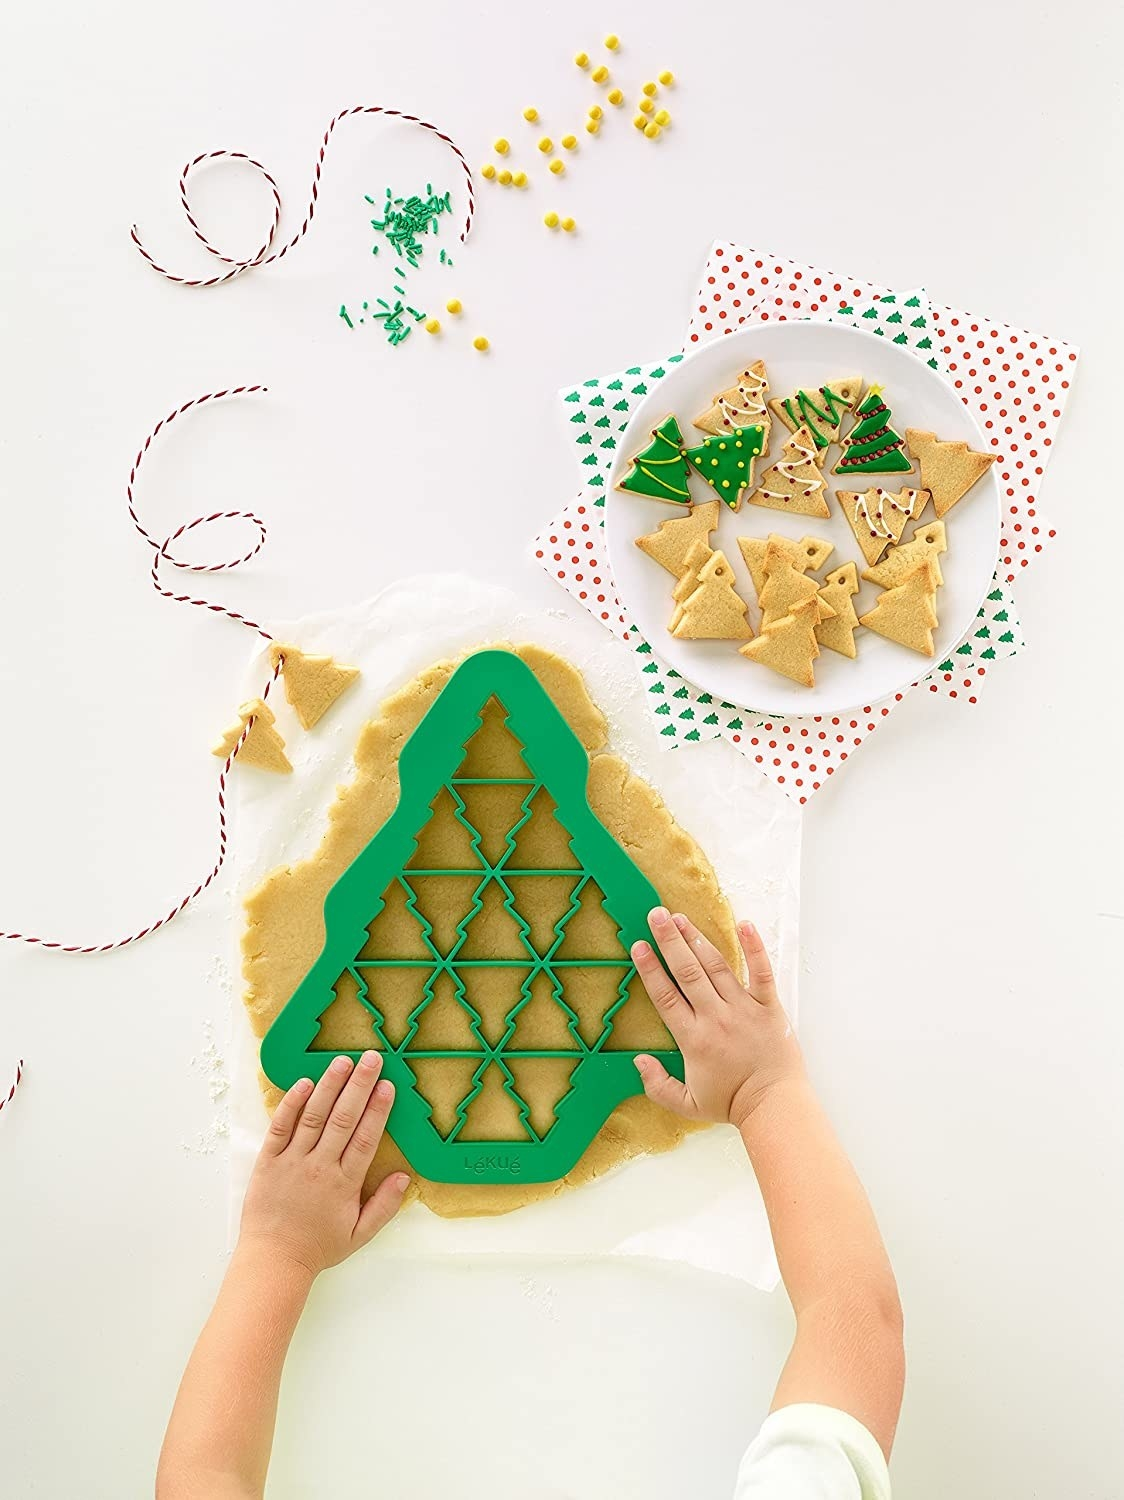 The Christmas tree–shaped cookie cutter that has 19 Christmas tree cookie cutters within it